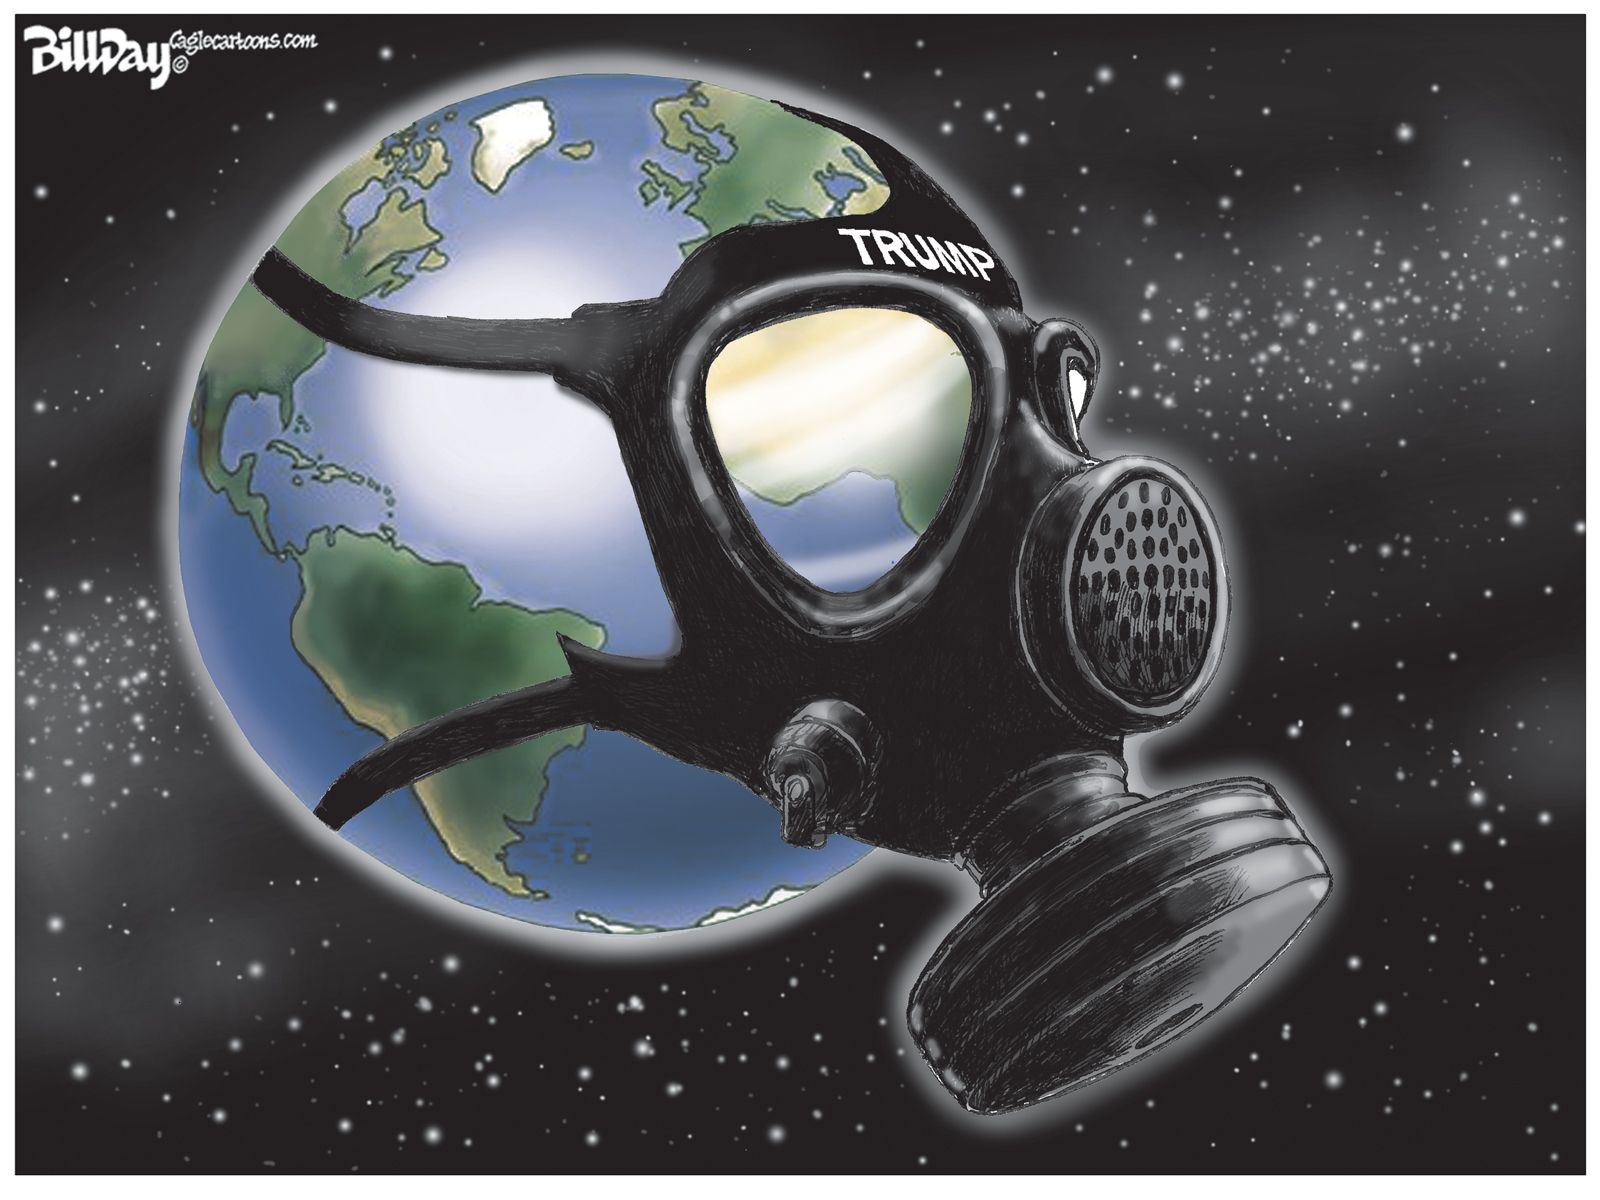 4 03 17 3 06a earth gas mask bill day politicususa com stuff